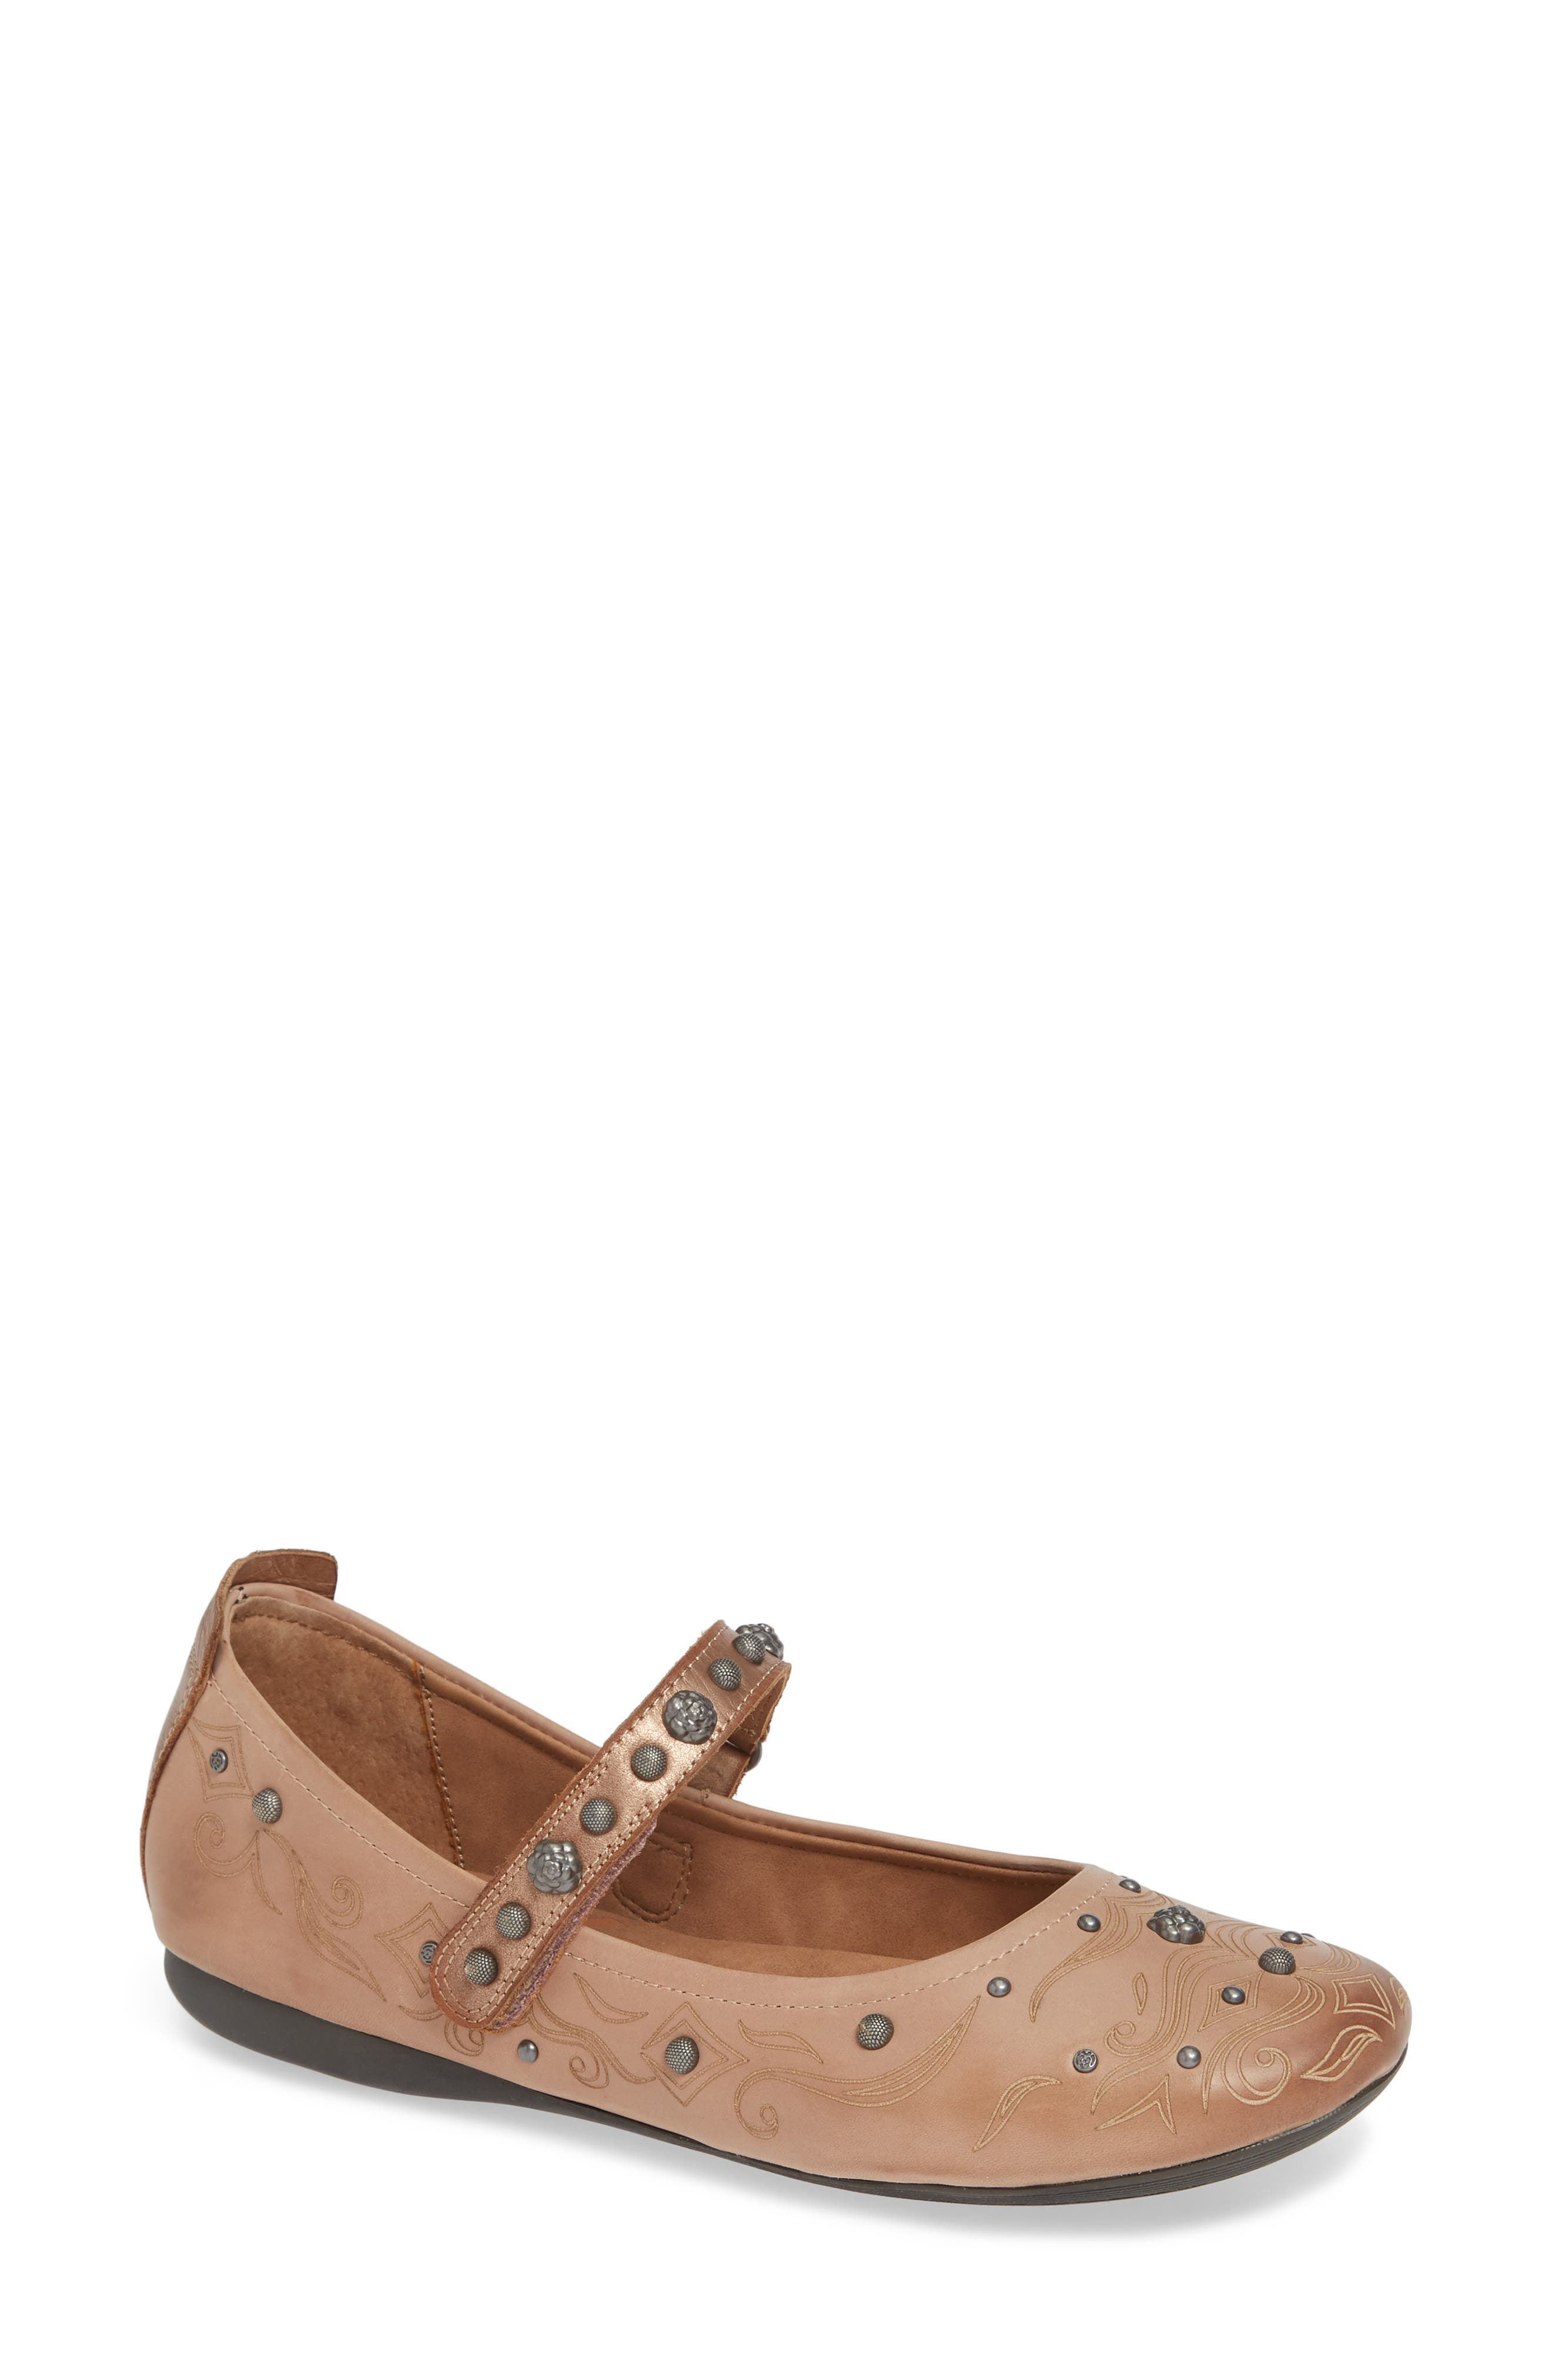 Gamine 2 Mary Jane Flat,                         Main,                         color, WARM PINK LEATHER